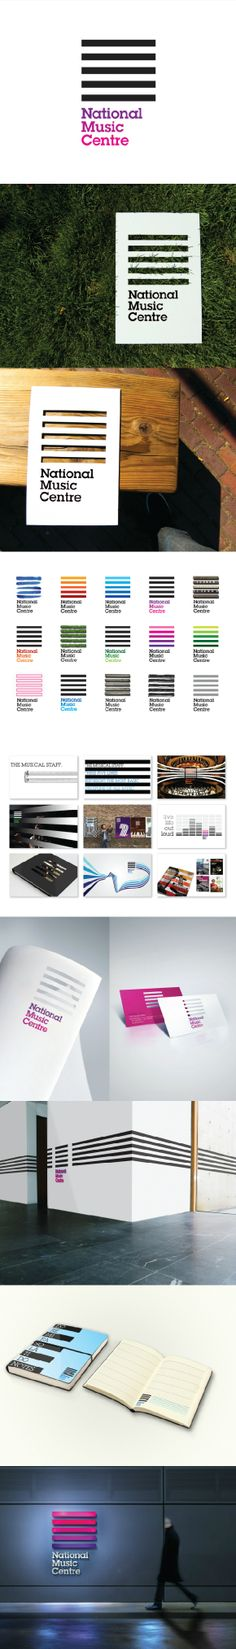 Branding of The National Music Centre by www.cossette.com